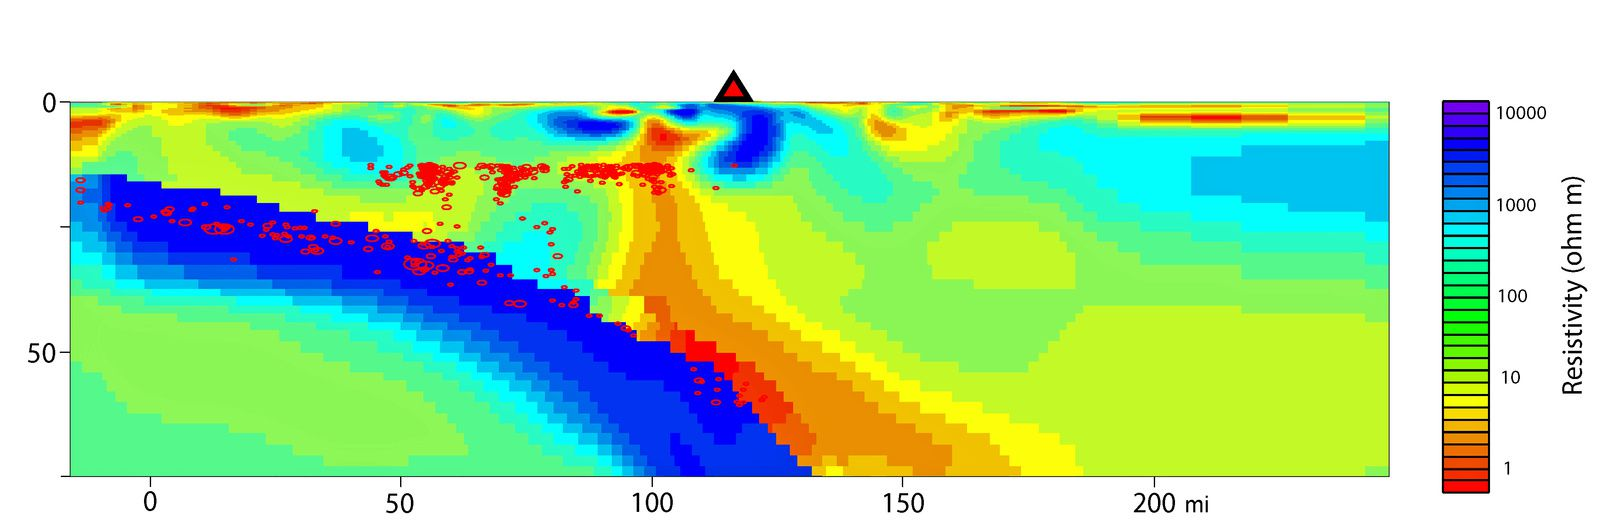 Top image: Mt Rainier and supply plumbing system beneath the volcano (symbolized by a red triangle) - the Juan de Fuca plate subducting in blue - Orange-yellow areas correspond to a higher electrical conductivity (or less resistance .) and report the position of fluids and partial melting rocks - red oval mark the hypocenters of earthquakes - bottom image: position of magnetotelluric sensors in pink / purple and seismic stations in yellow / Photo Credit: Shane McGary R, Woods Hole Oceanographic Institution - a click to enlarge.